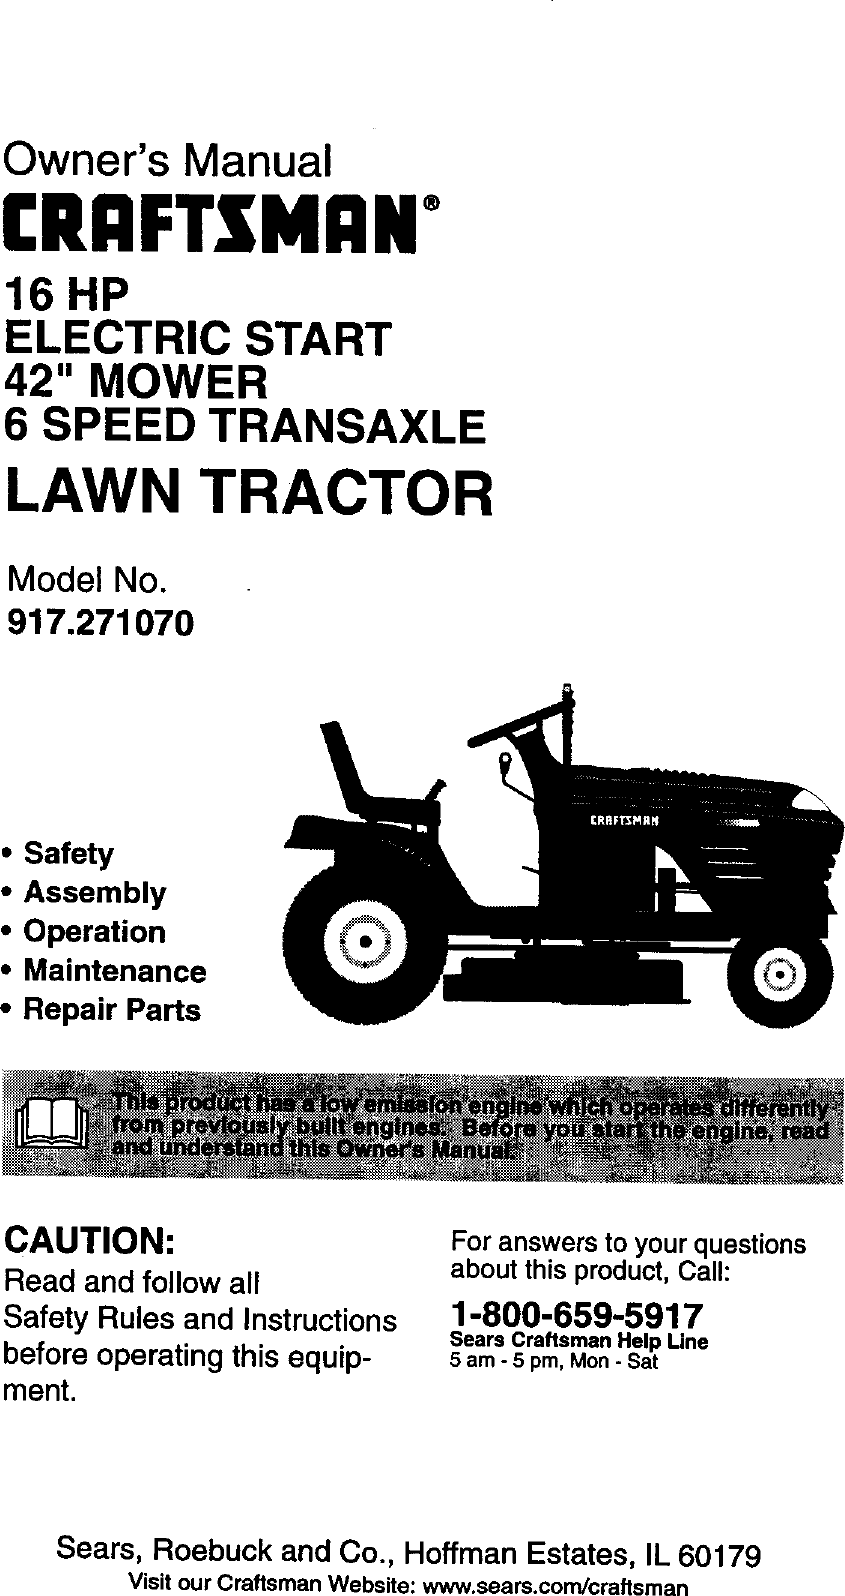 medium resolution of craftsman 917271070 user manual lawn tractor manuals and guides 99030708 electrical wiring schematics schematic wiring diagram for 917271070